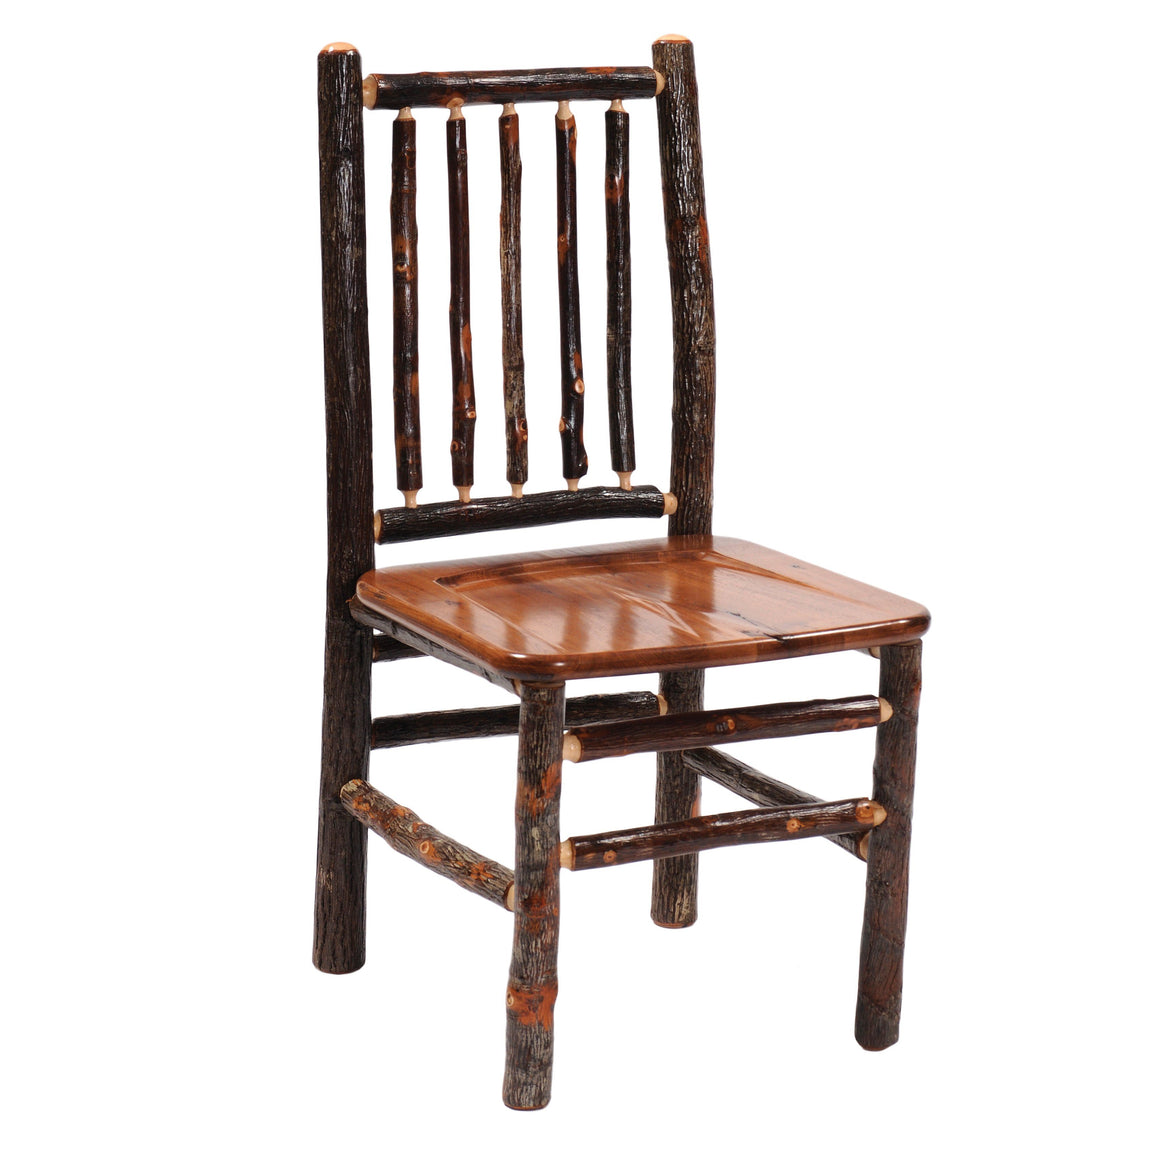 Natural Hickory Log Spoke Back Side Chair - Wood Seat - Standard Finish Chair Fireside Lodge Natural Hickory Seat